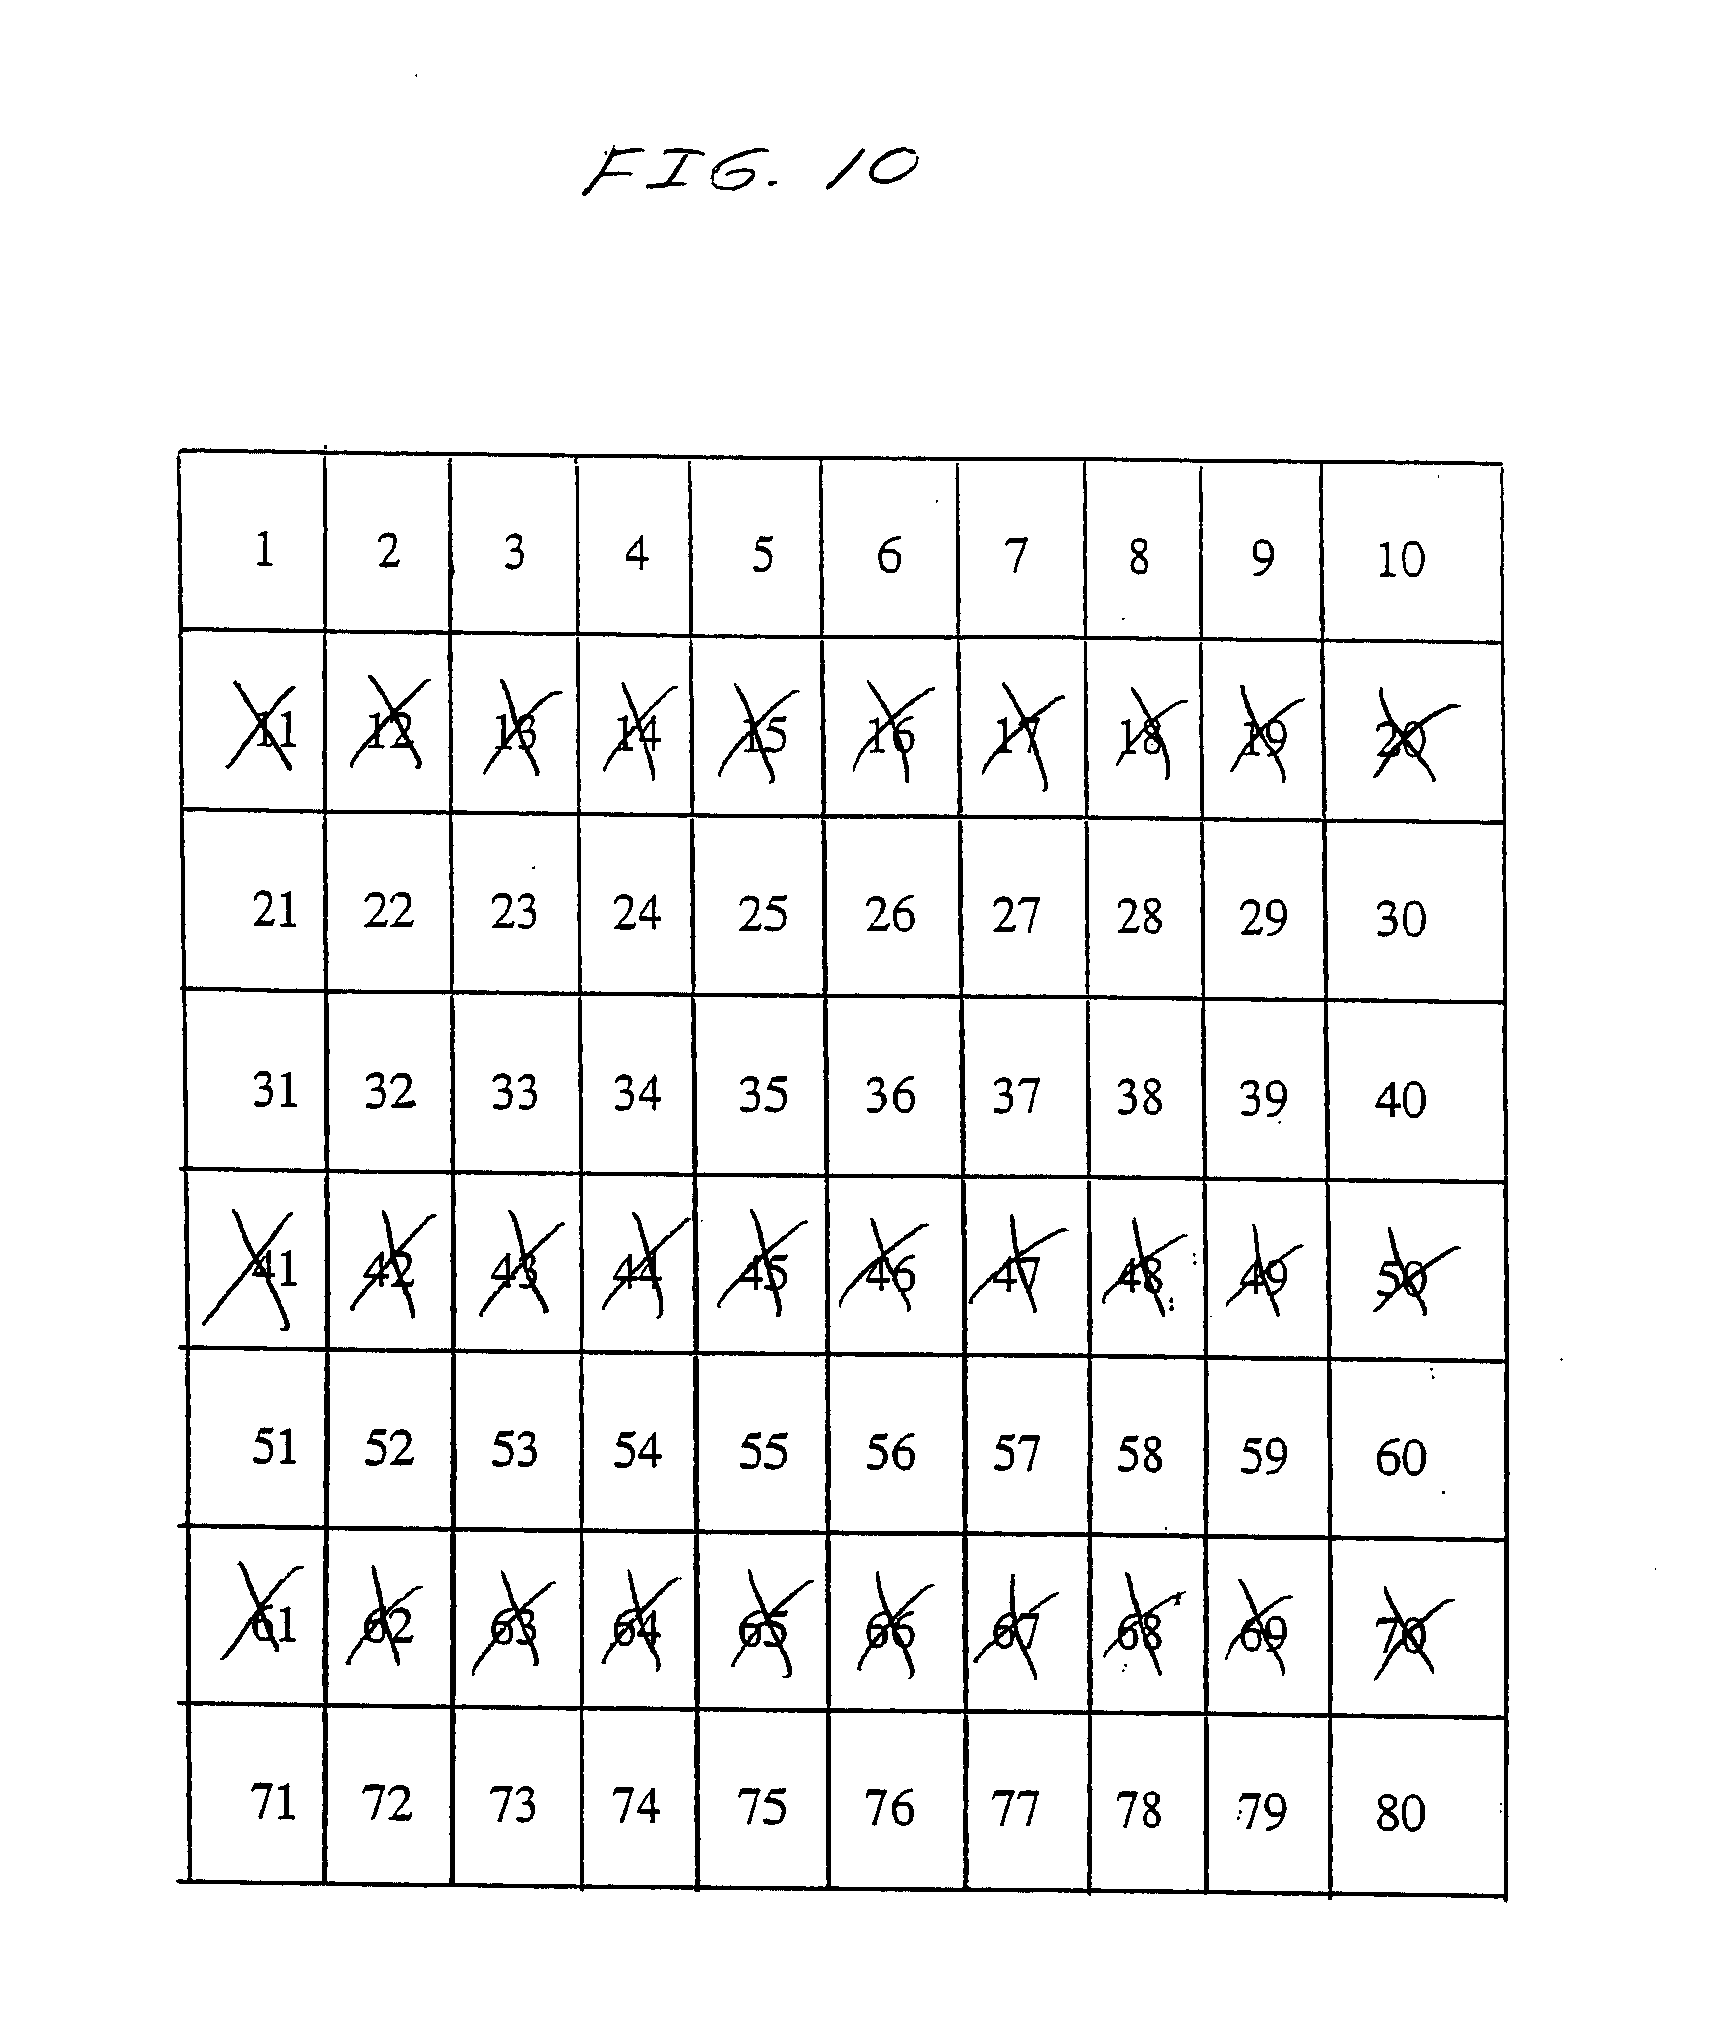 Multi chance keno keno plus how to play object of game winning numbers - Patent Drawing